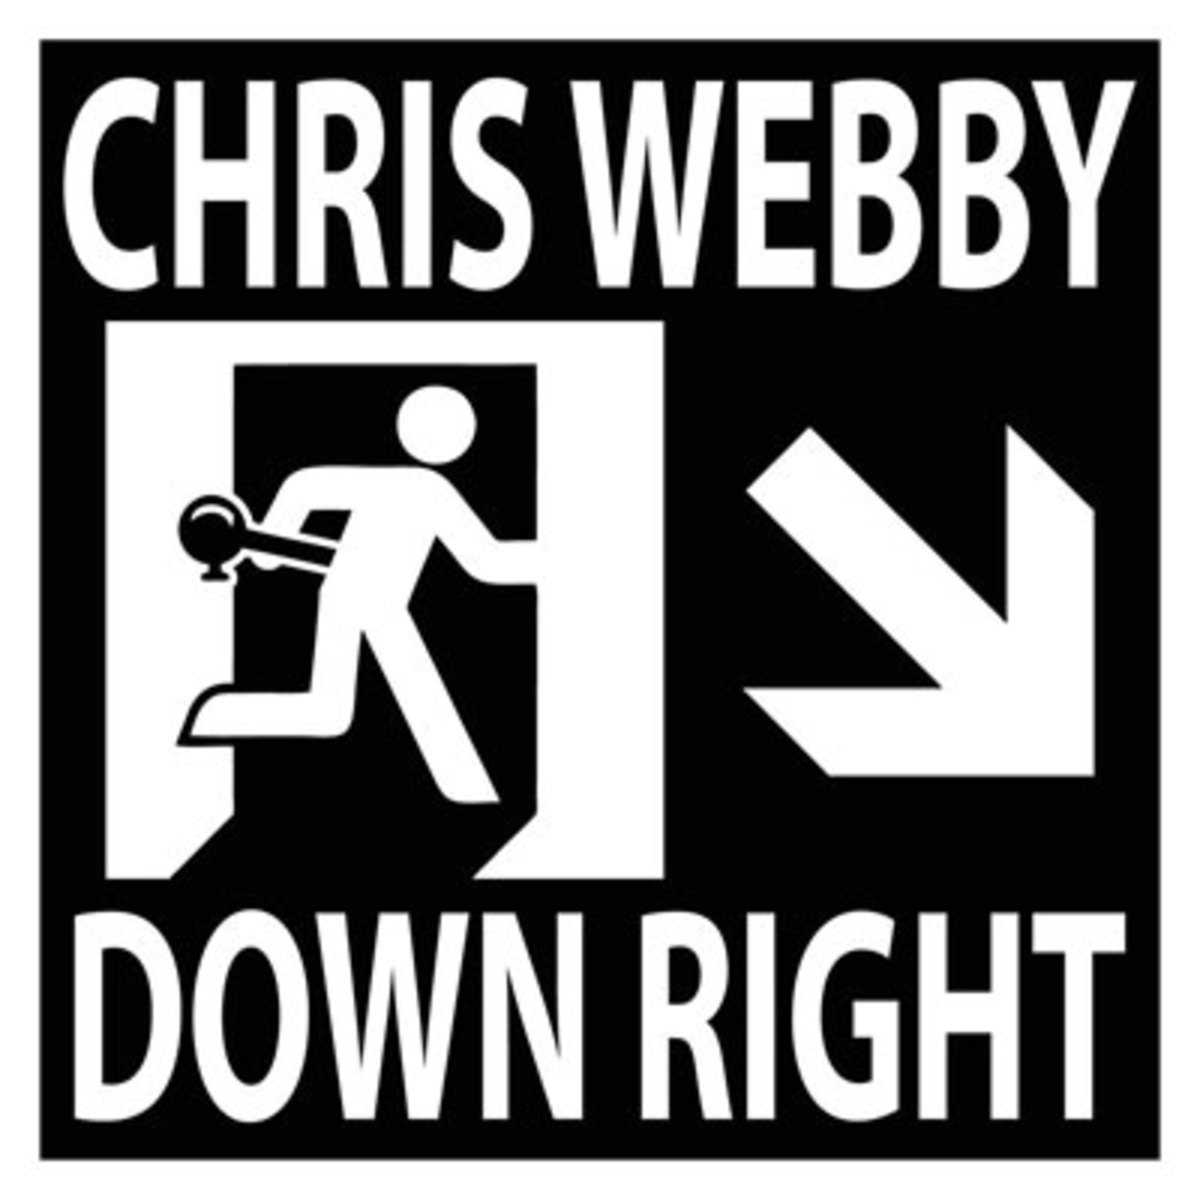 chriswebby-downright.jpg